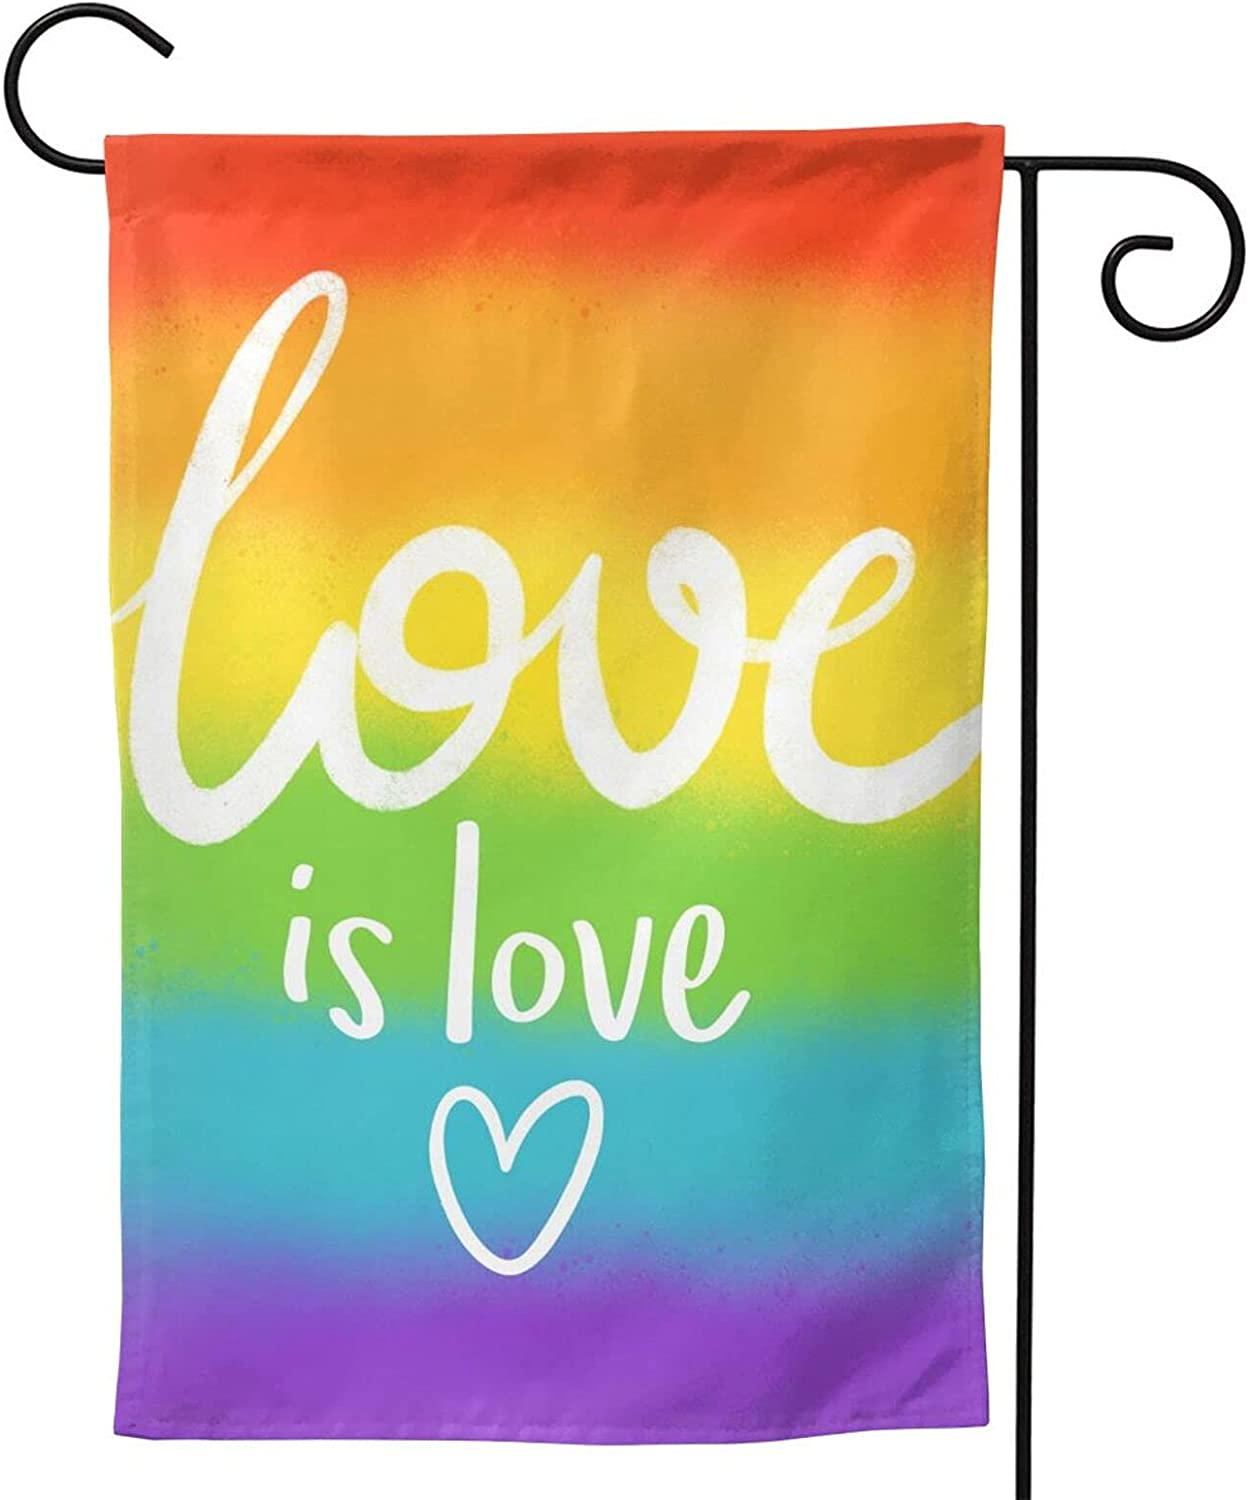 LGBT Love is Love Pride garden Flag Double Sided LGBT Rainbow Pansexual Flags, Love Always Wins Outdoor Signs Gifts for Gay Month Party Parade Decorative 12x18